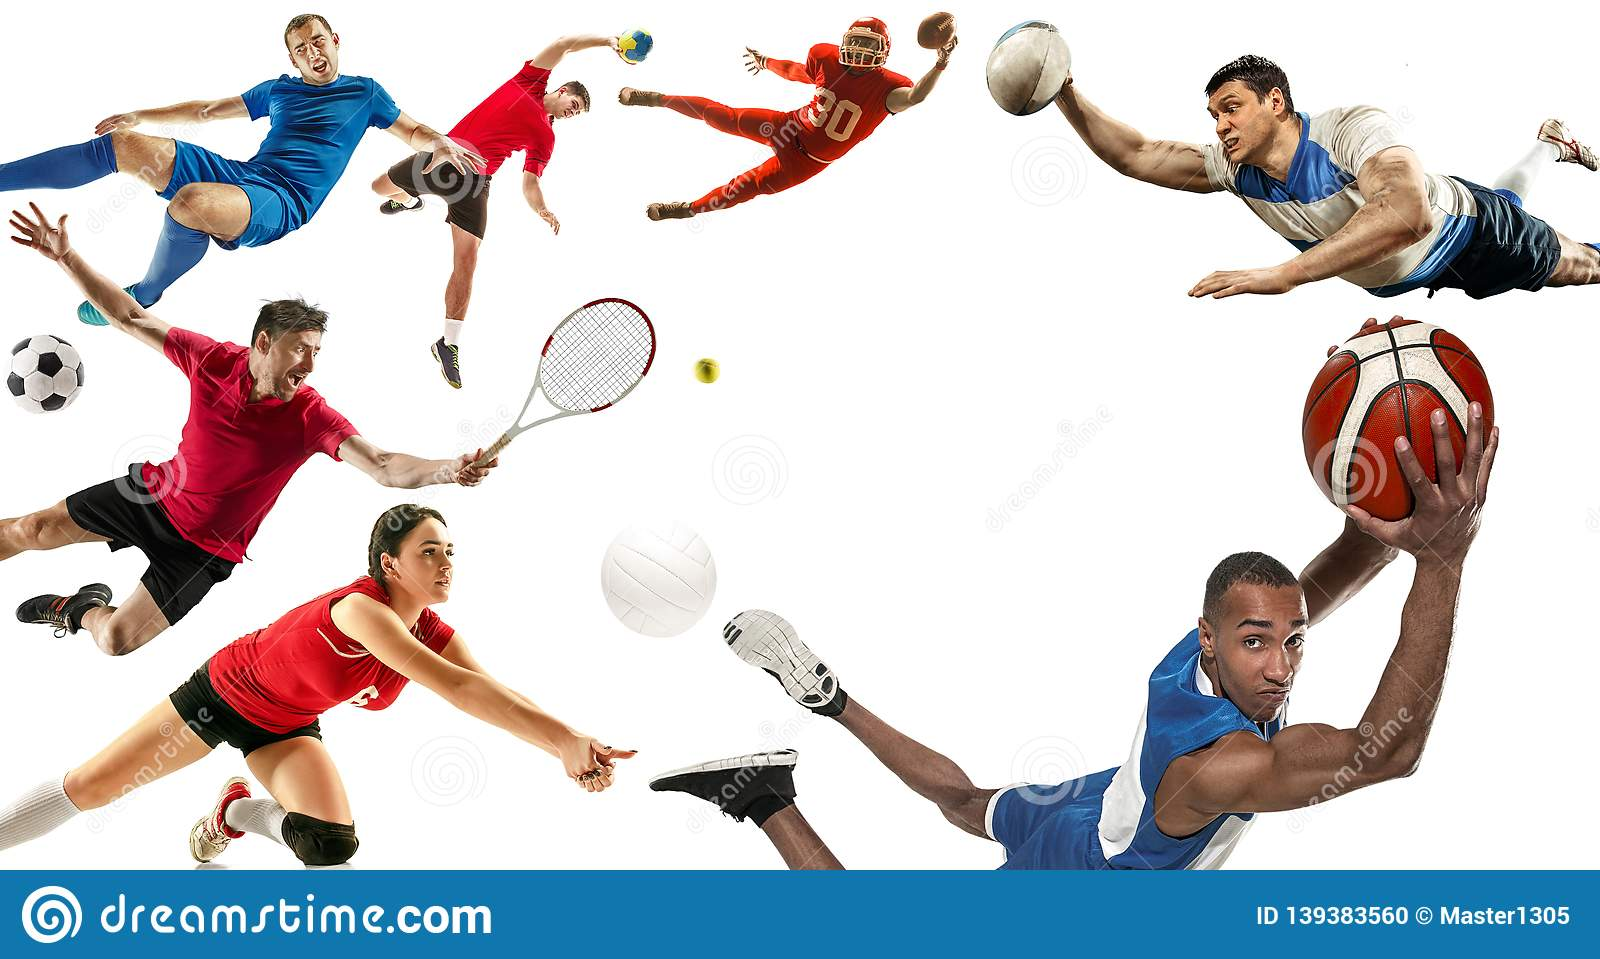 Sport collage about soccer, american football, basketball, volleyball, tennis, rugby, handball